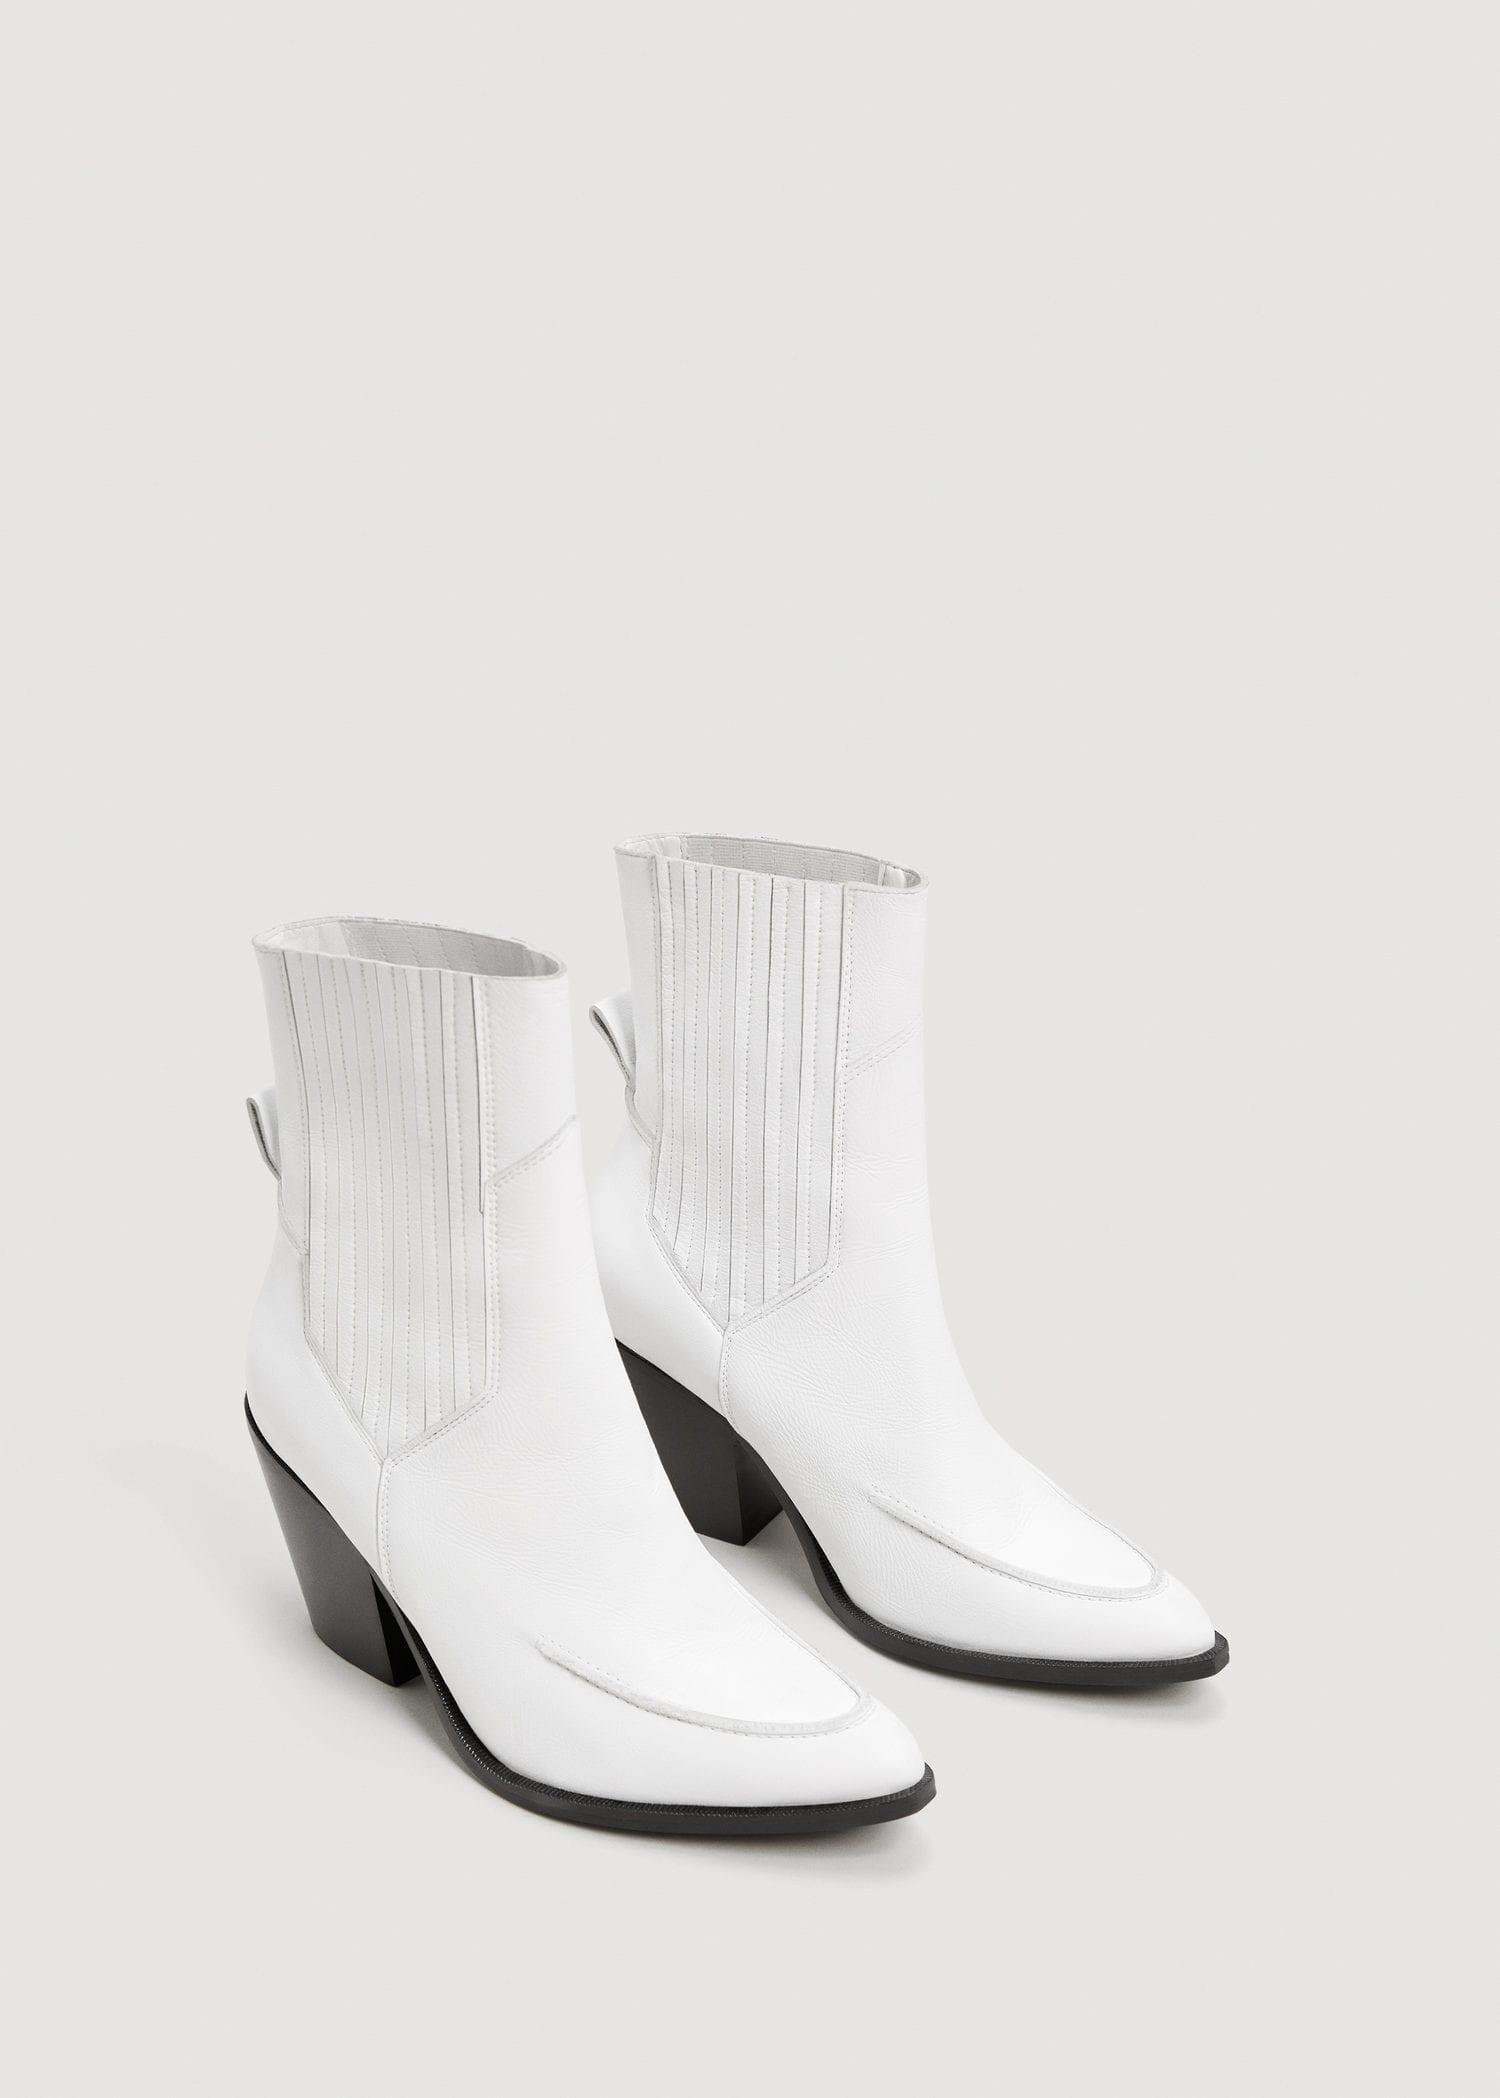 4c1eaaebe58 Mango White Leather Cowboy Ankle Boots